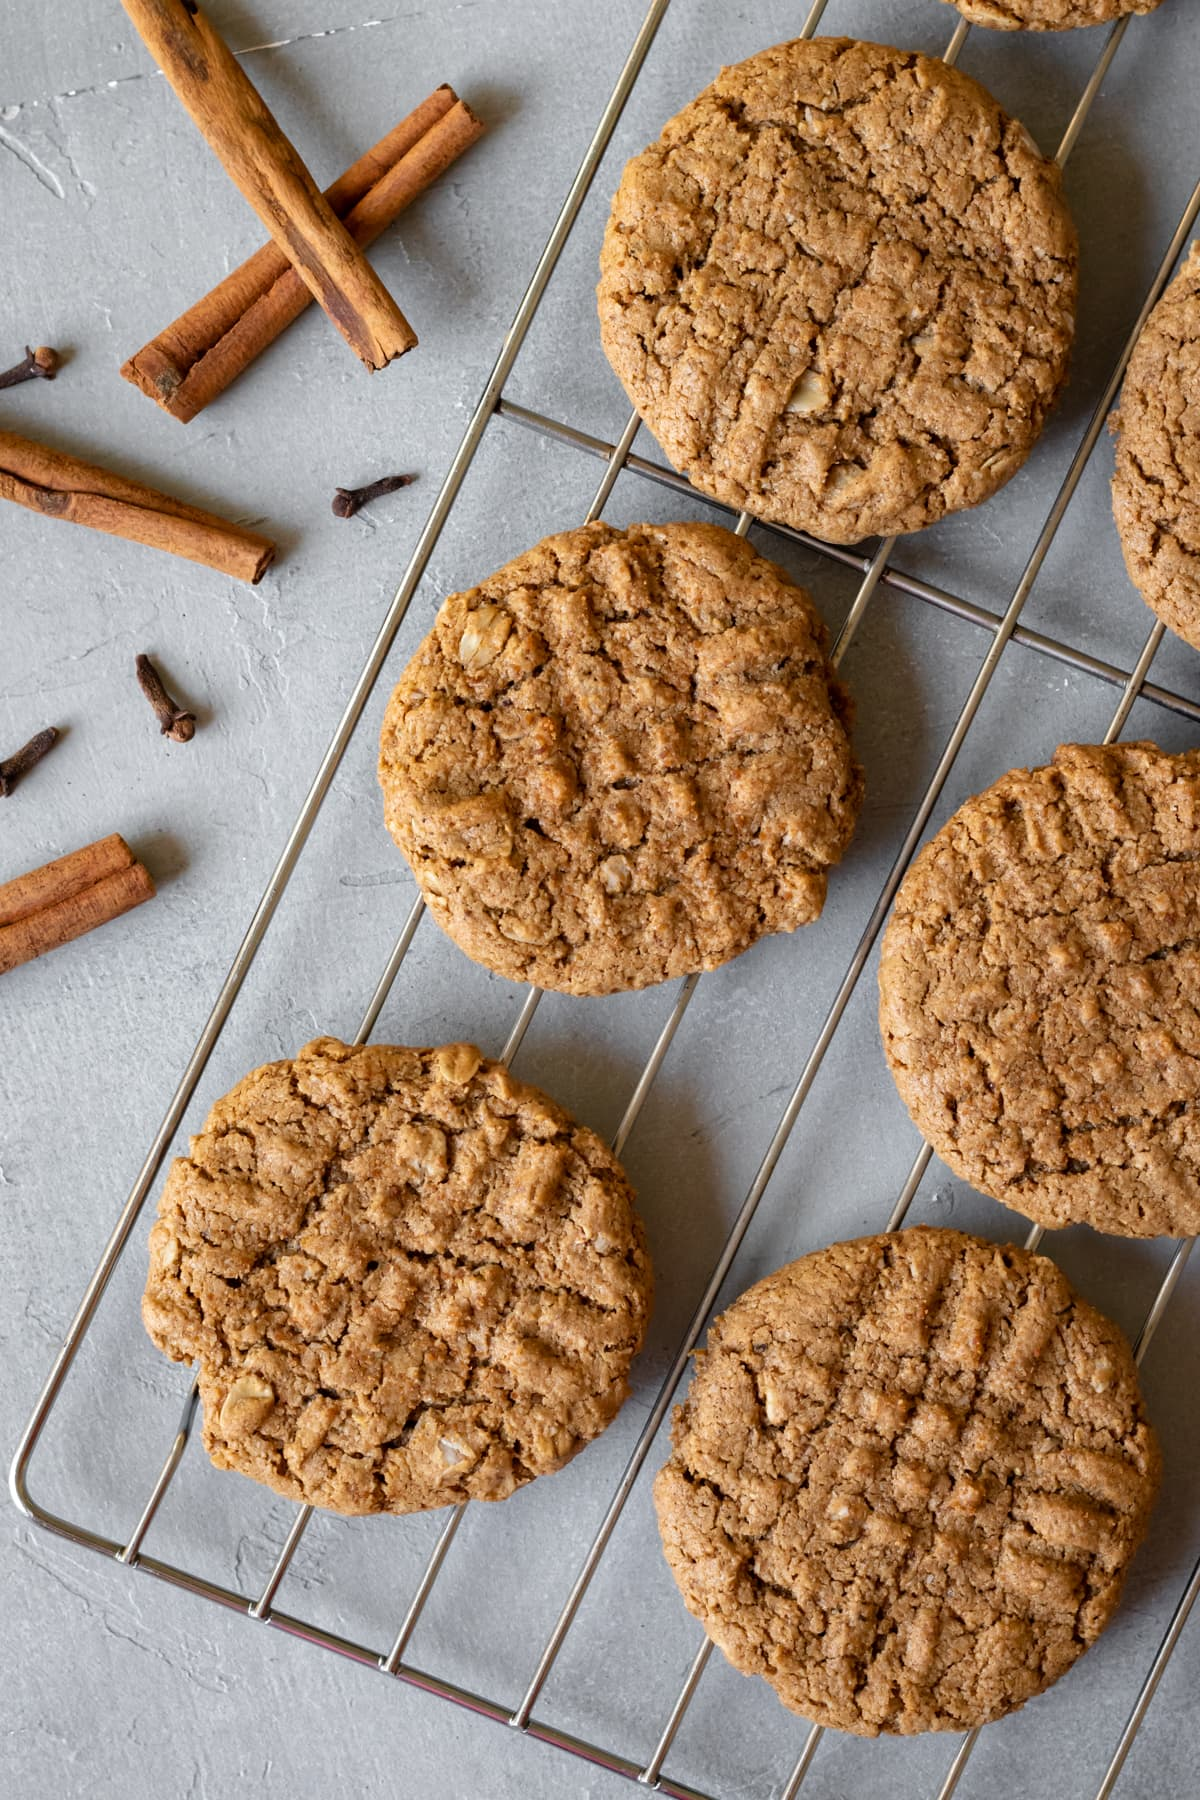 spicy oatmeal cookies cooling on a rack